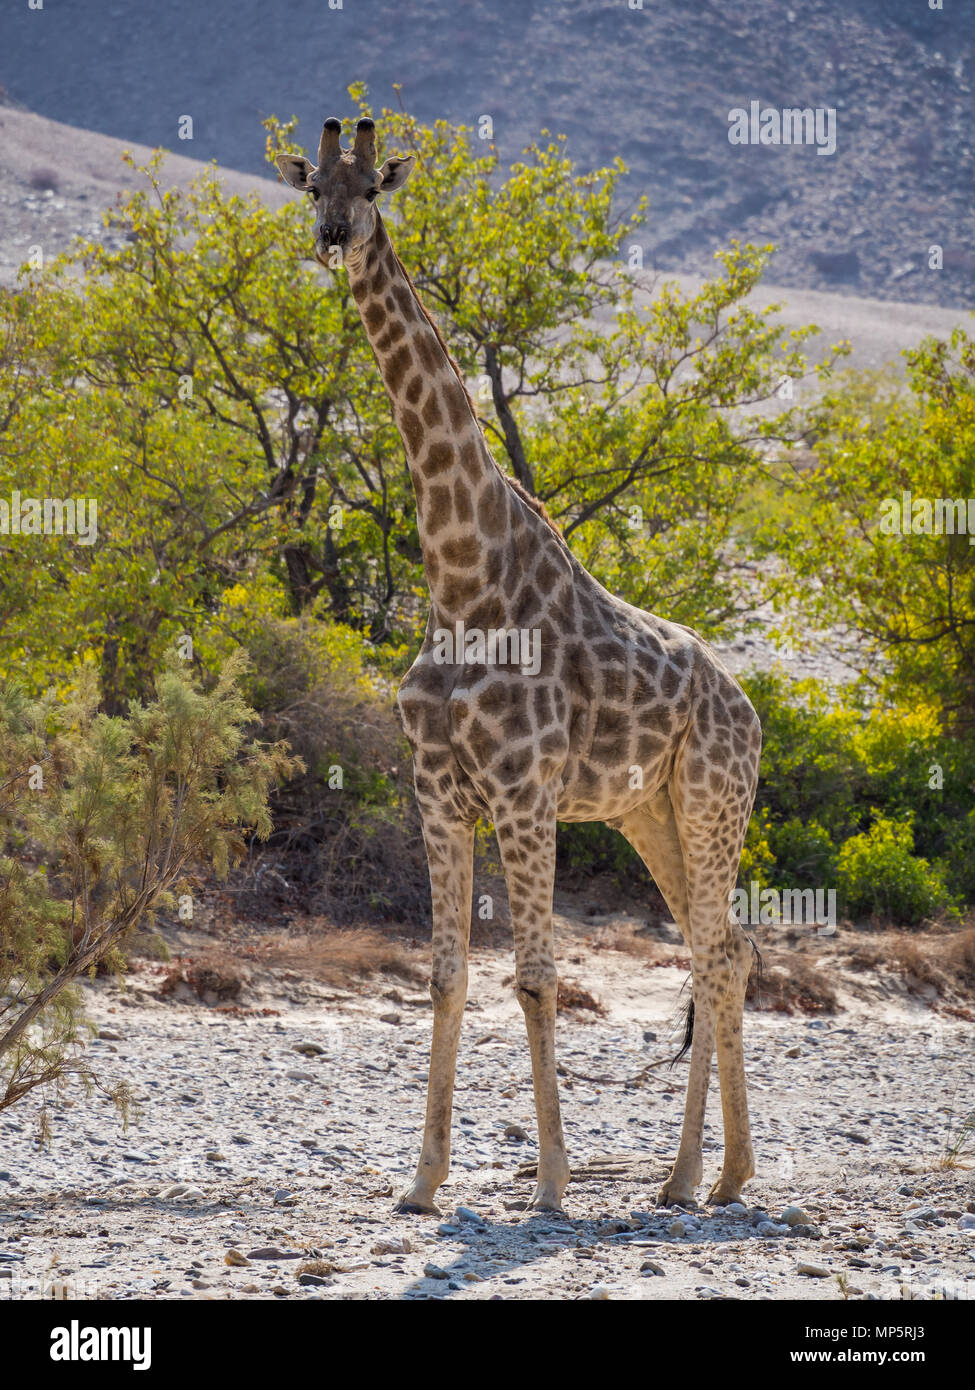 Large giraffe standing in rocky dry river bed with green trees, Damaraland, Namibia, Southern Africa Stock Photo